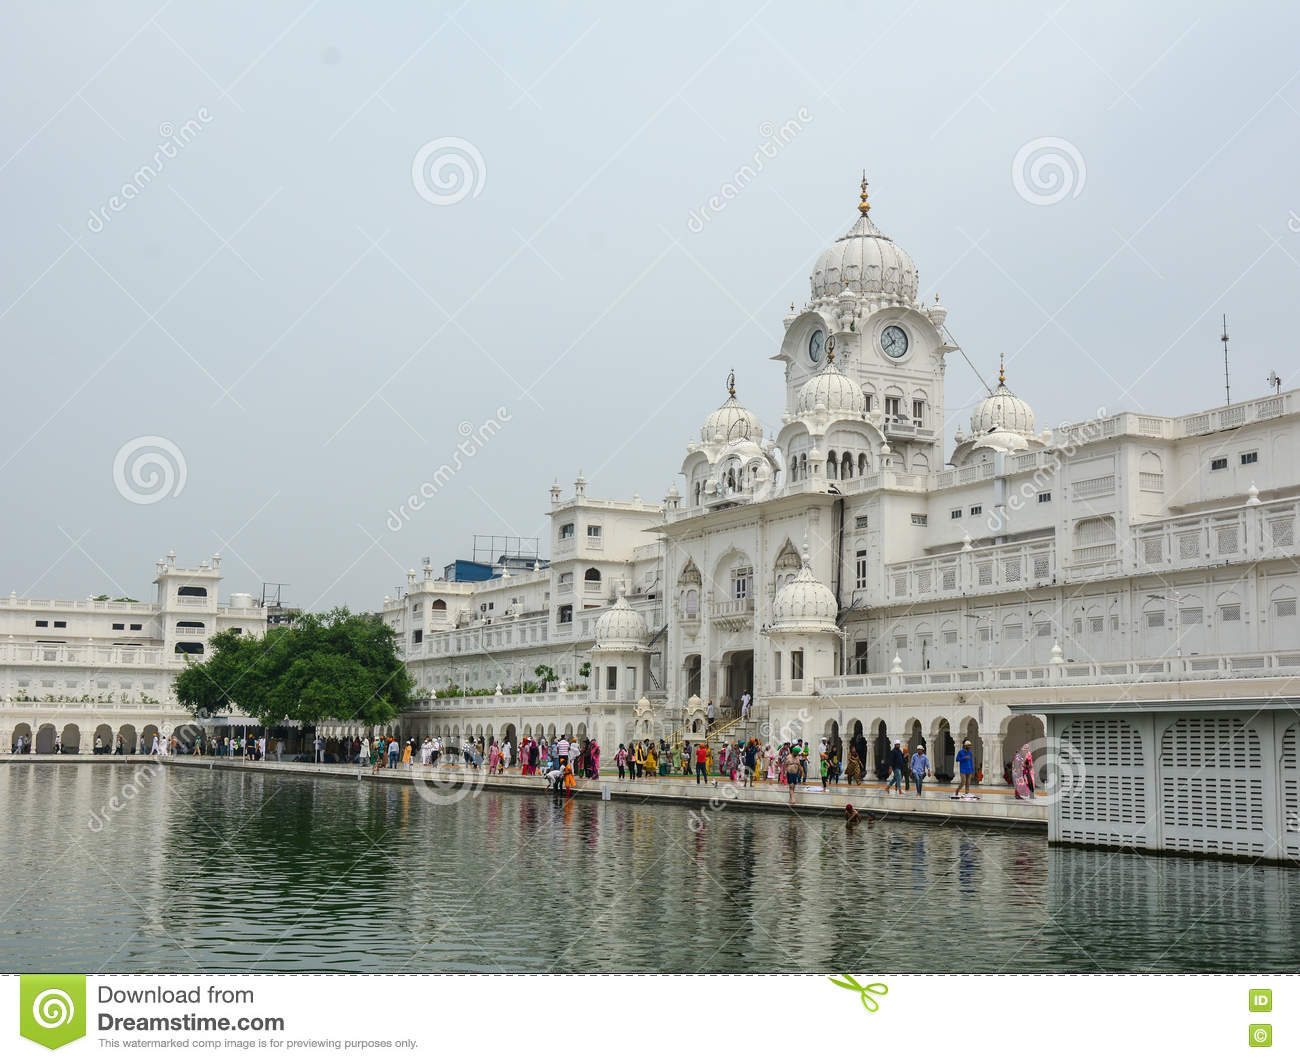 People at Golden Temple in Amritsar, India